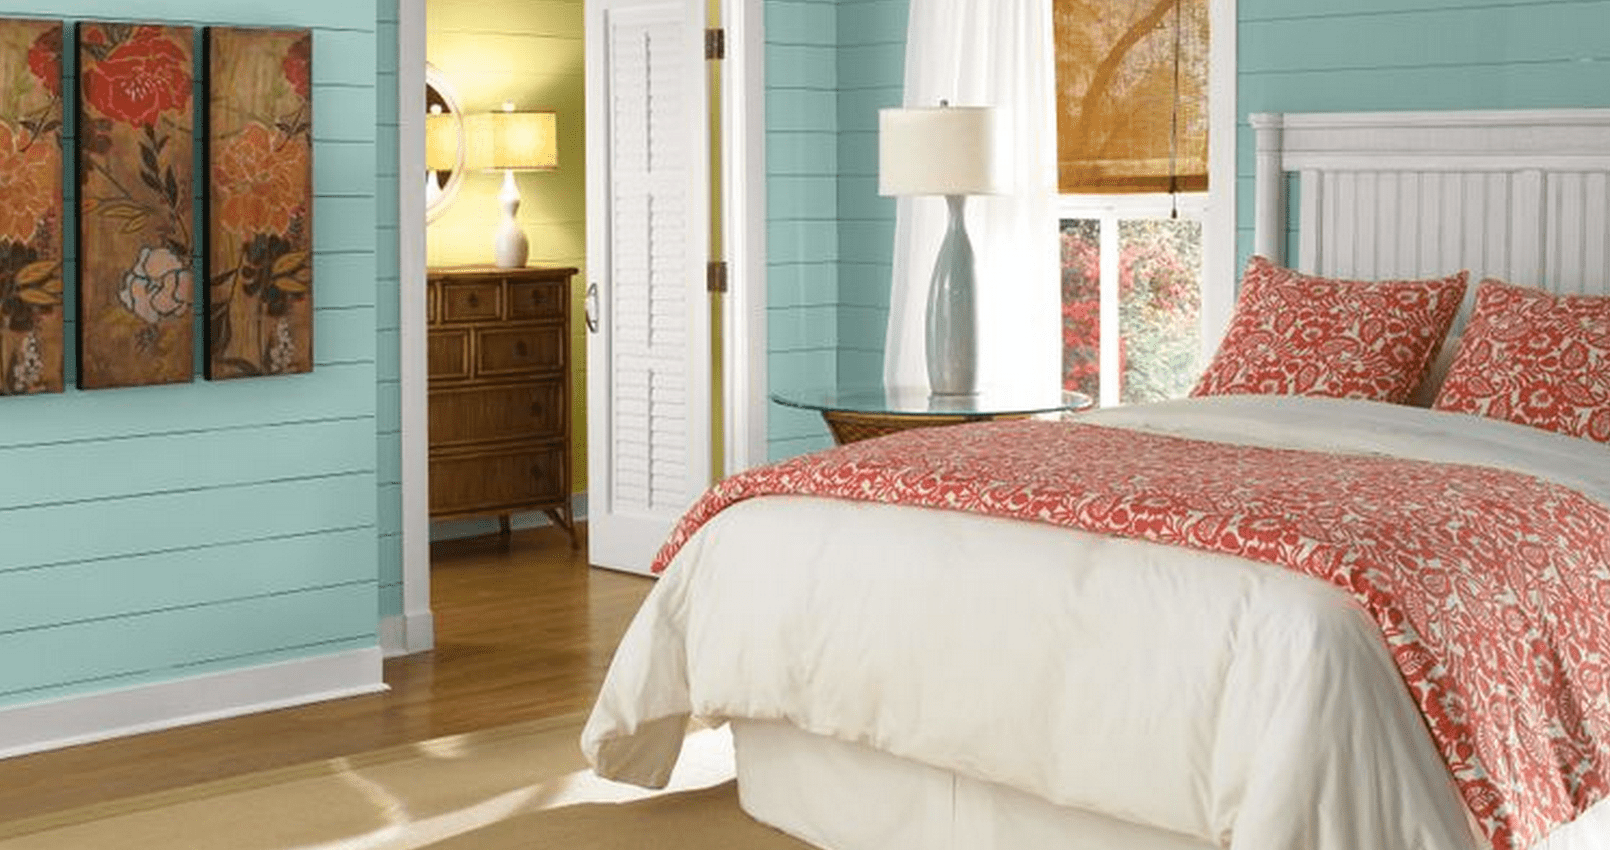 10 Best Beach-Inspired Paint Colors